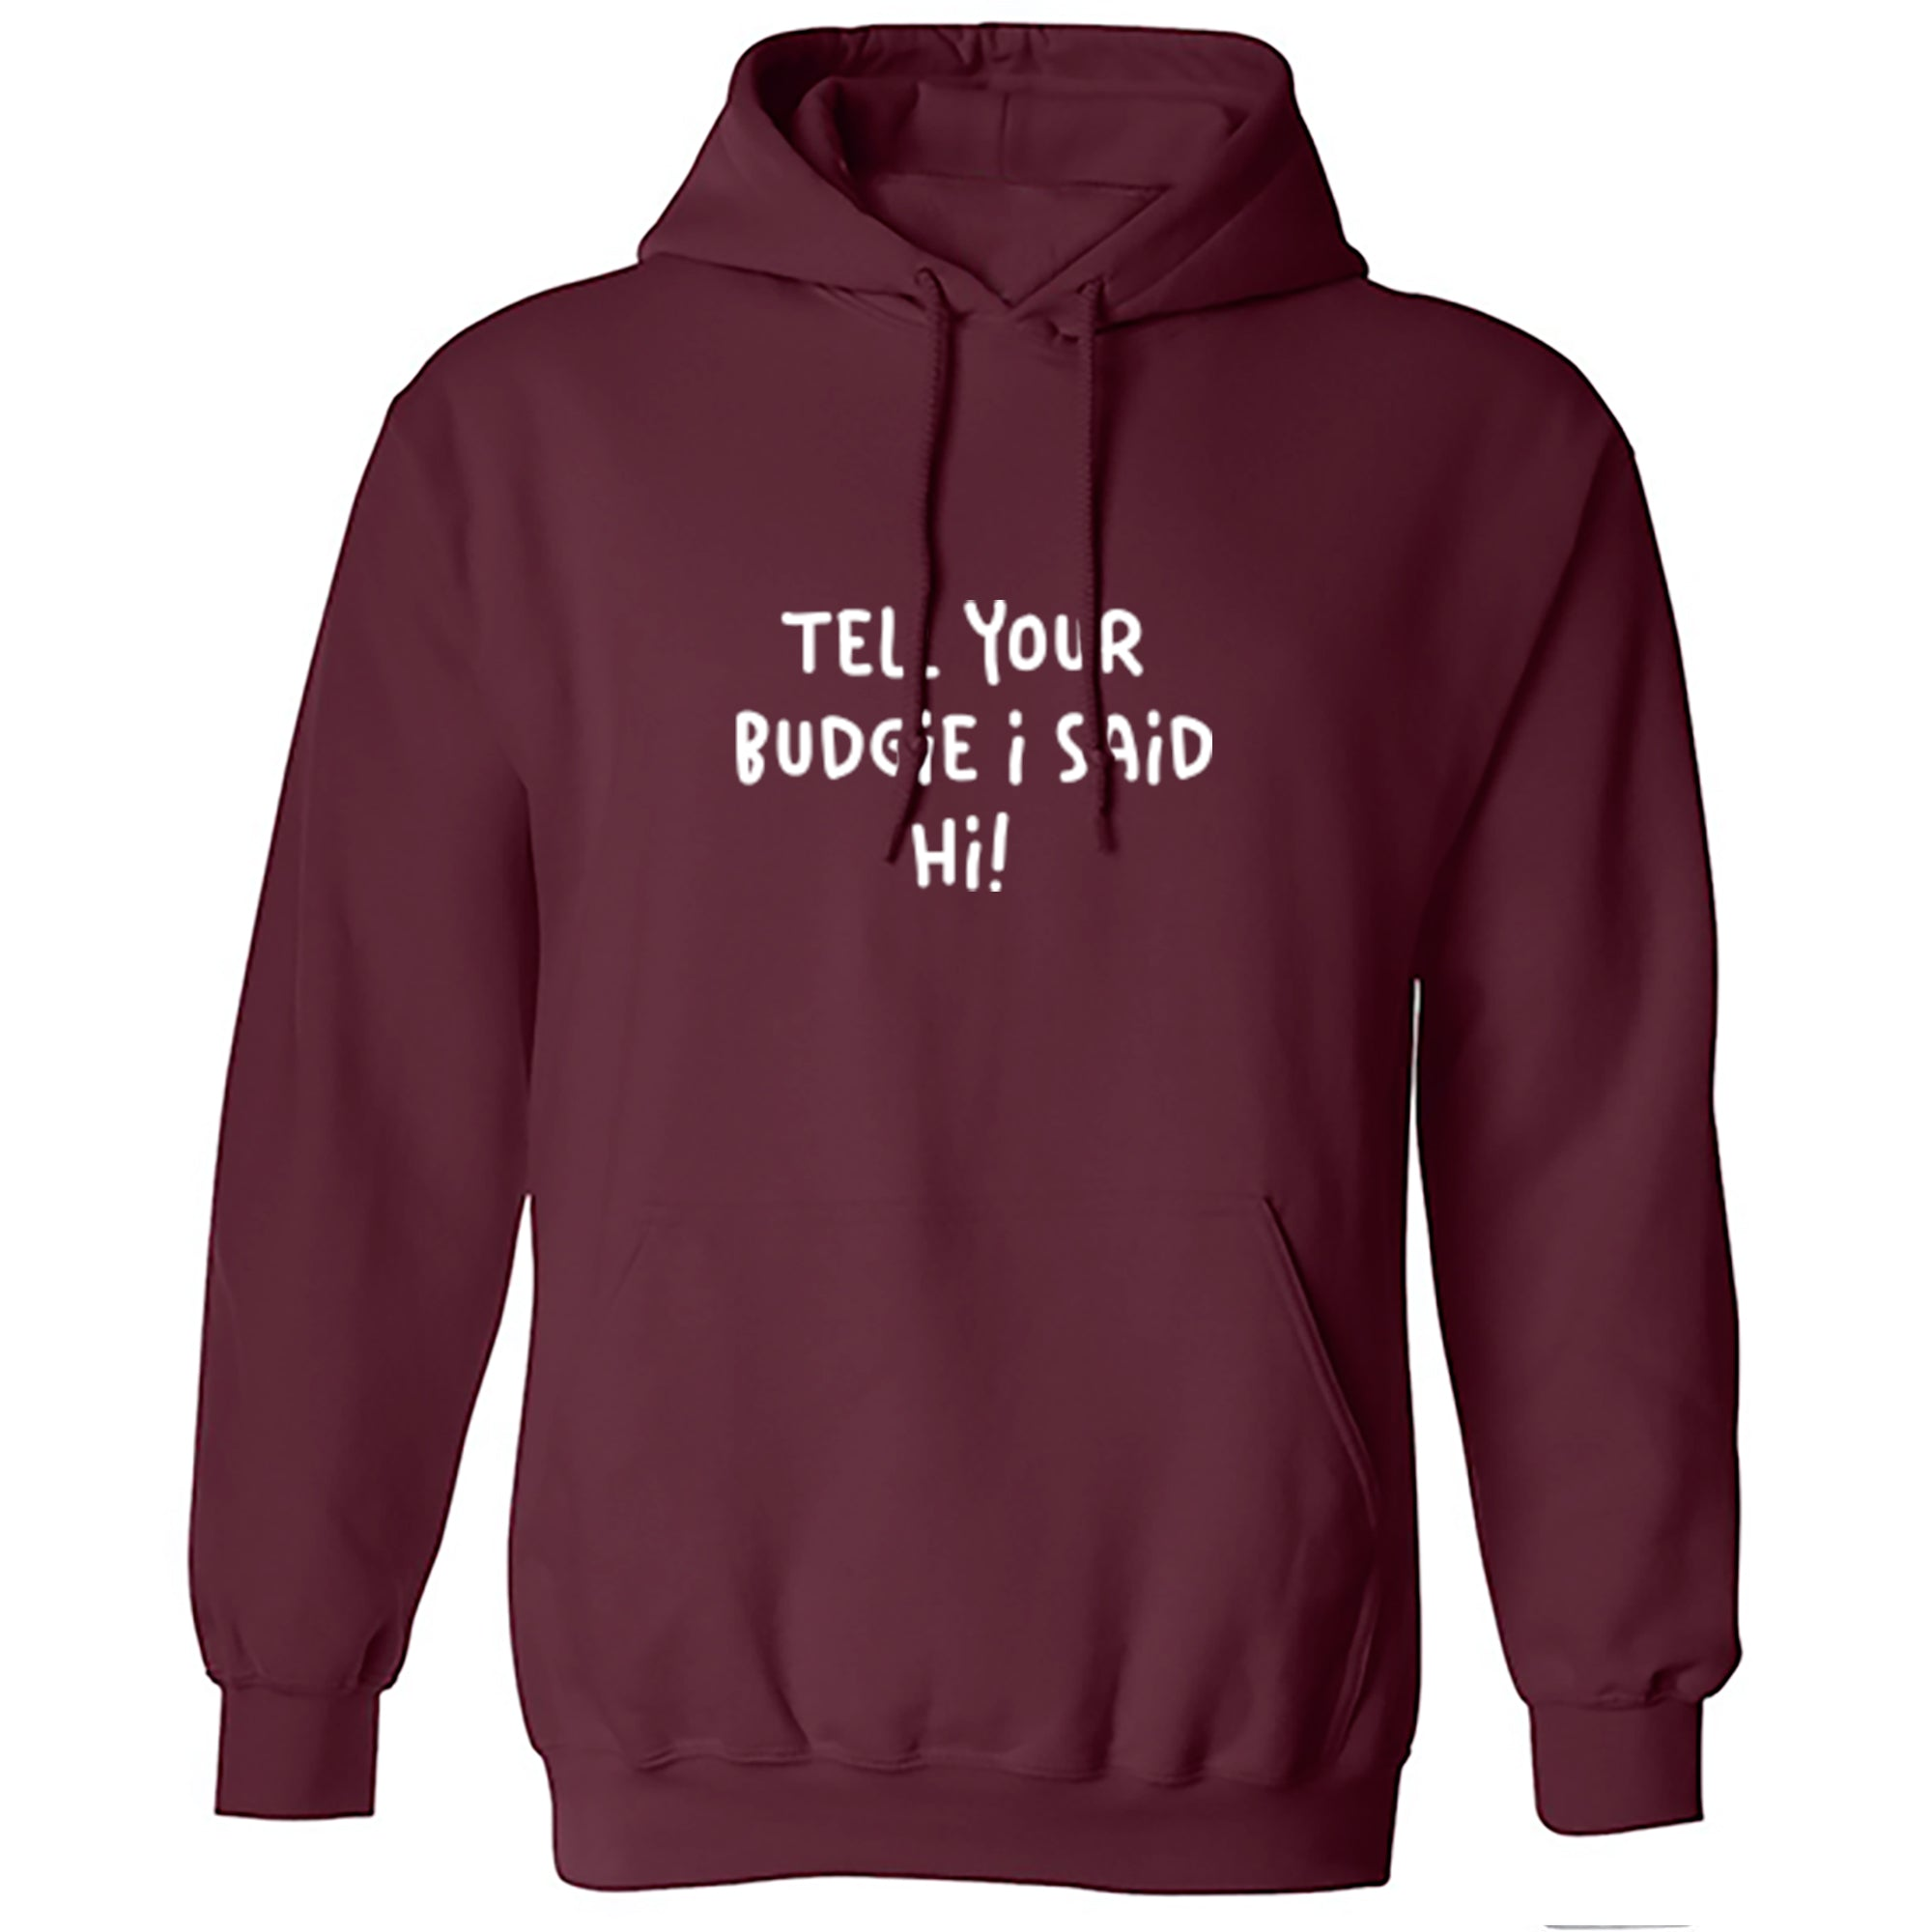 Tell Your Budgie I Said Hi! Unisex Hoodie S1196